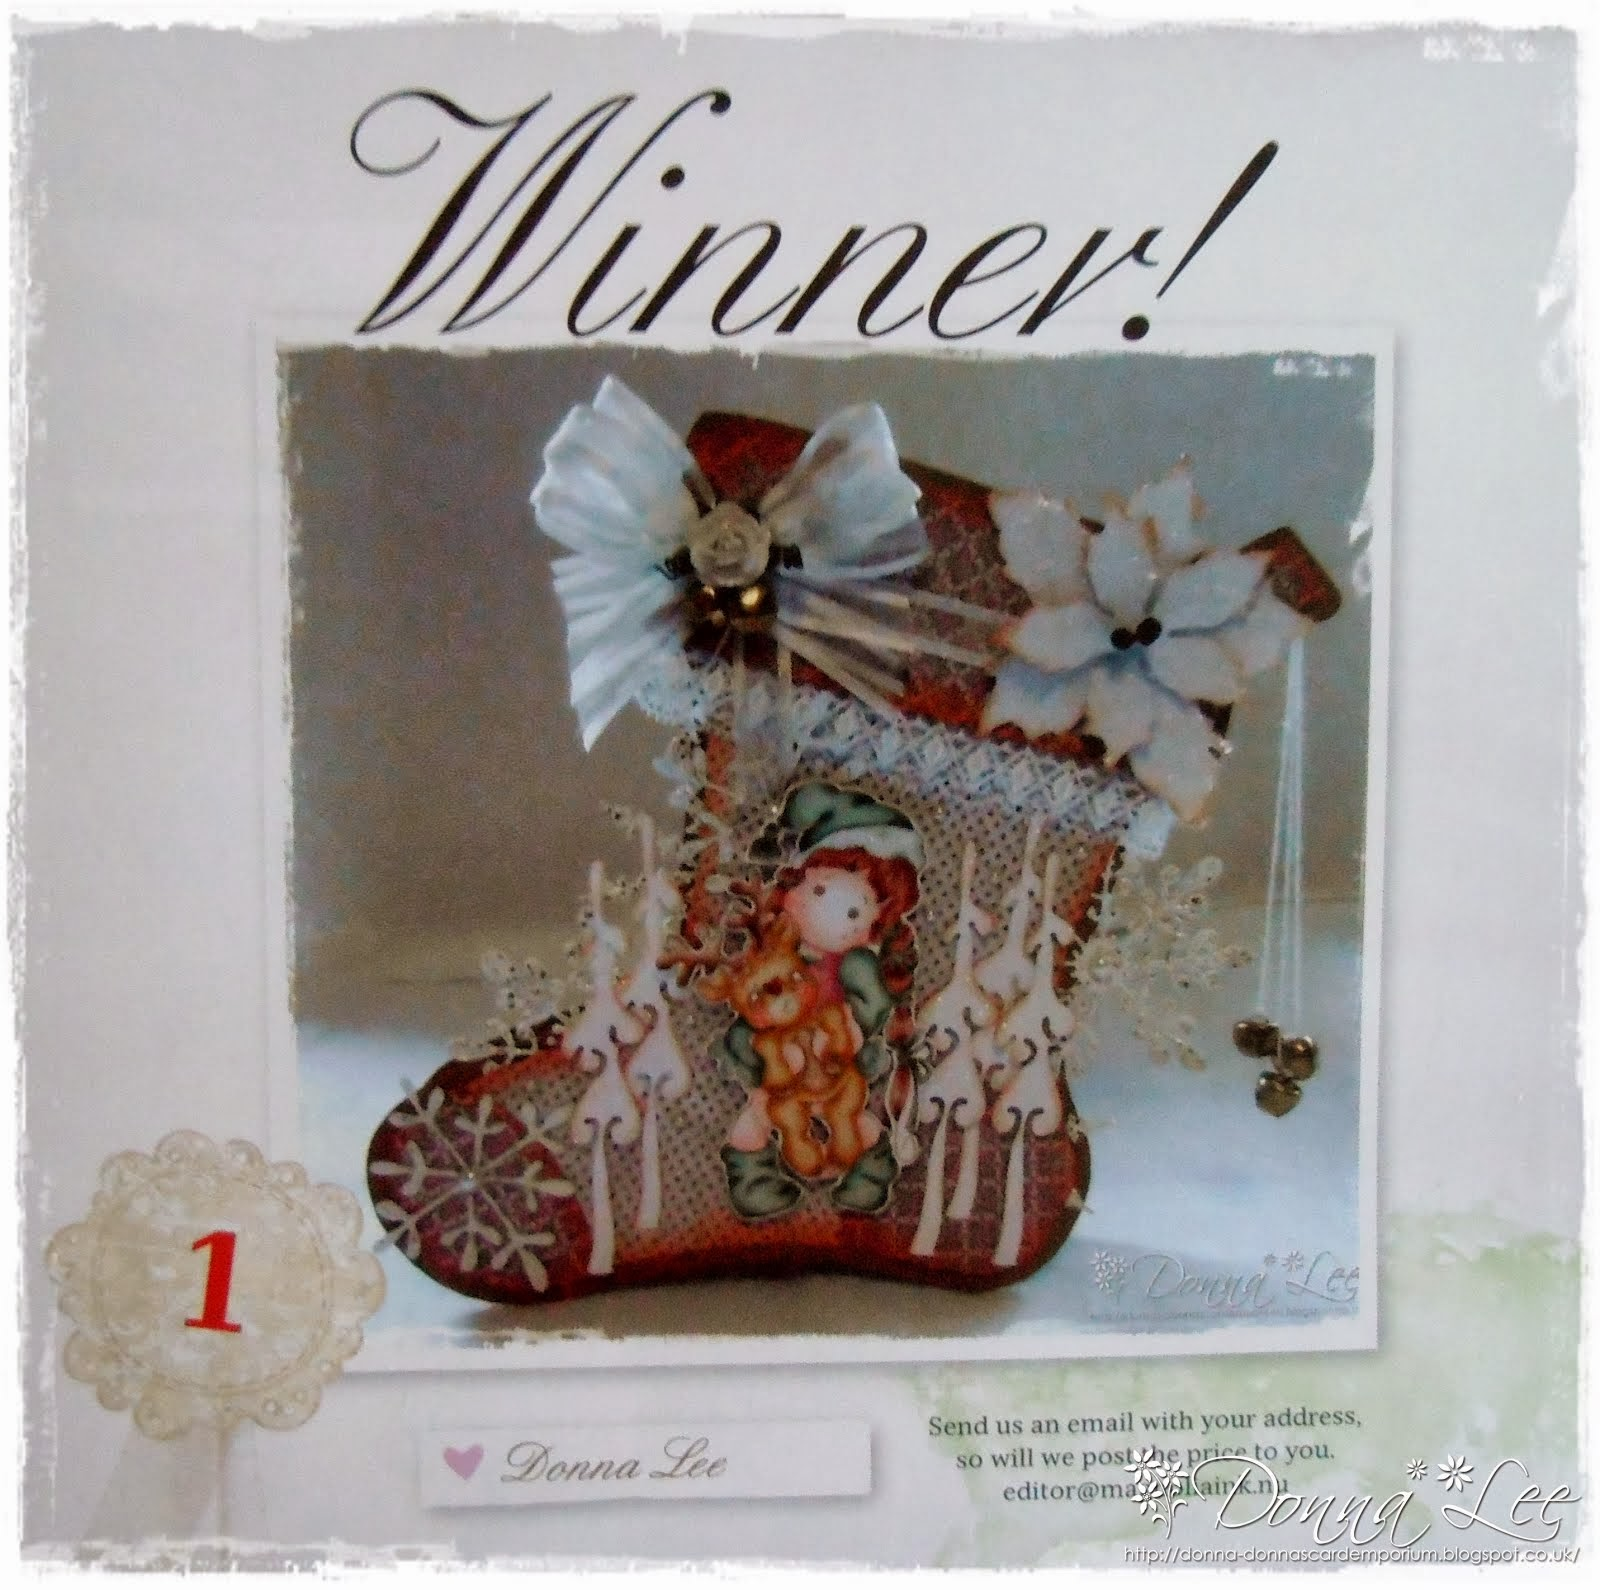 So proud to be the Christmas stocking contest winner!